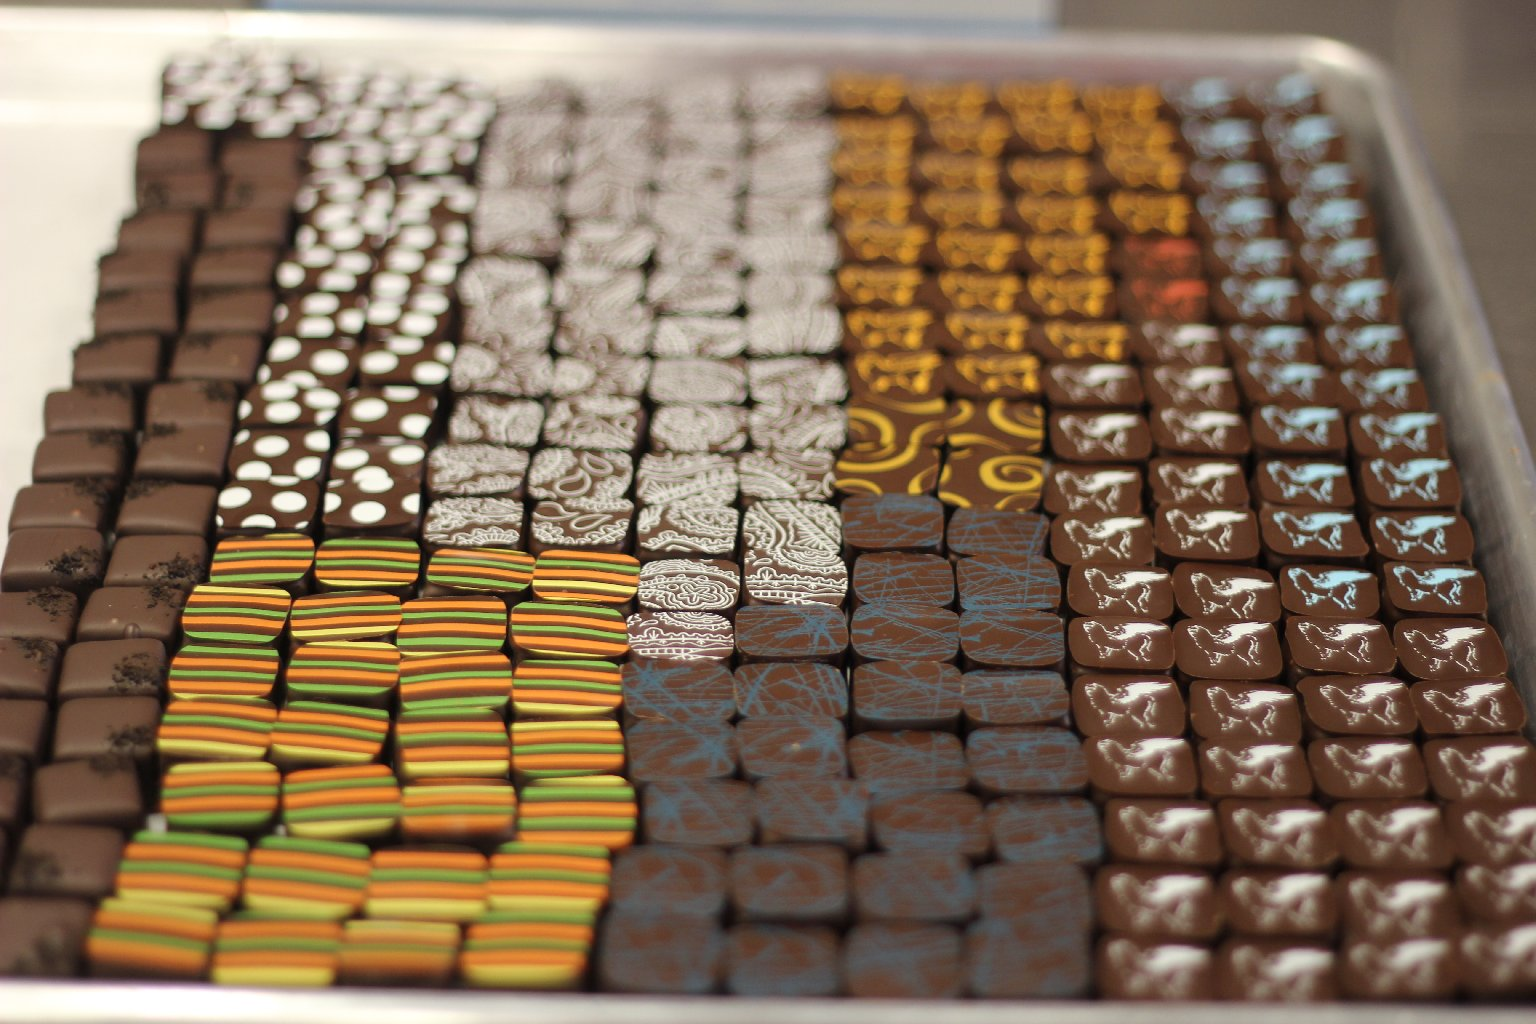 A tray of chocolates from Socola Chocolatier. Photo: Momo Chang